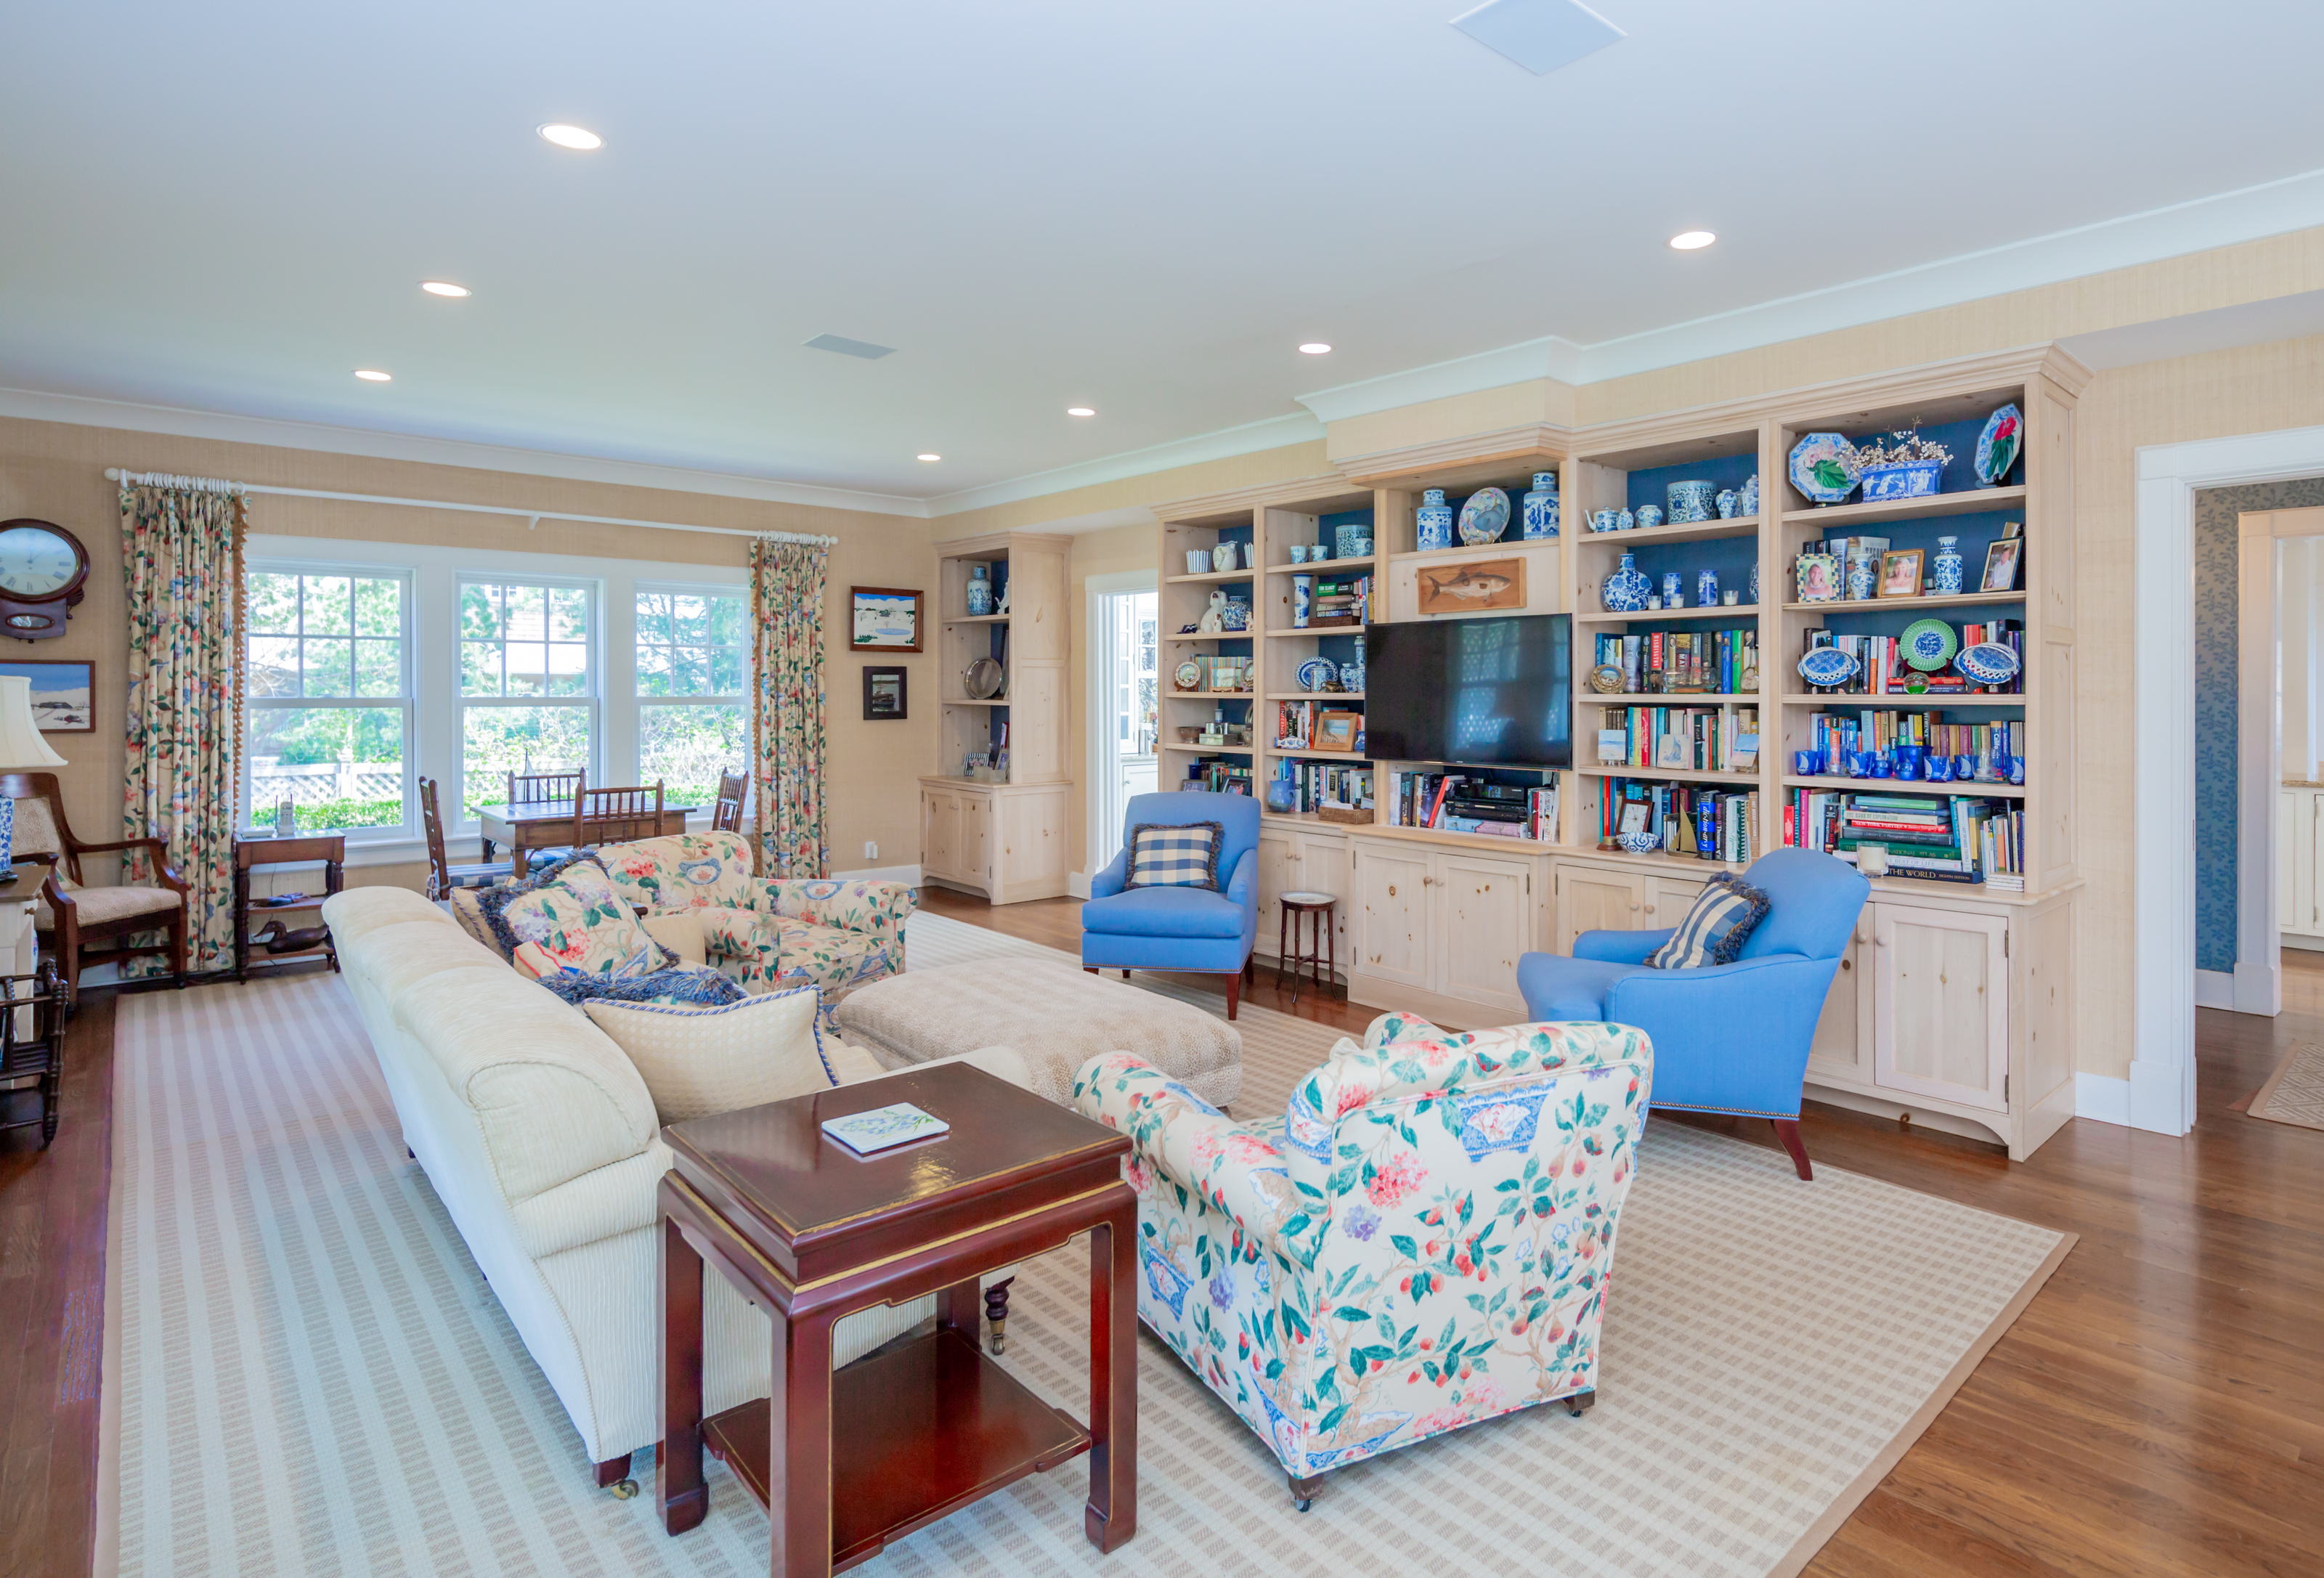 332 Bluff Road, Amagansett. COURTESY SOTHEBY'S INTERNATIONAL REALTY